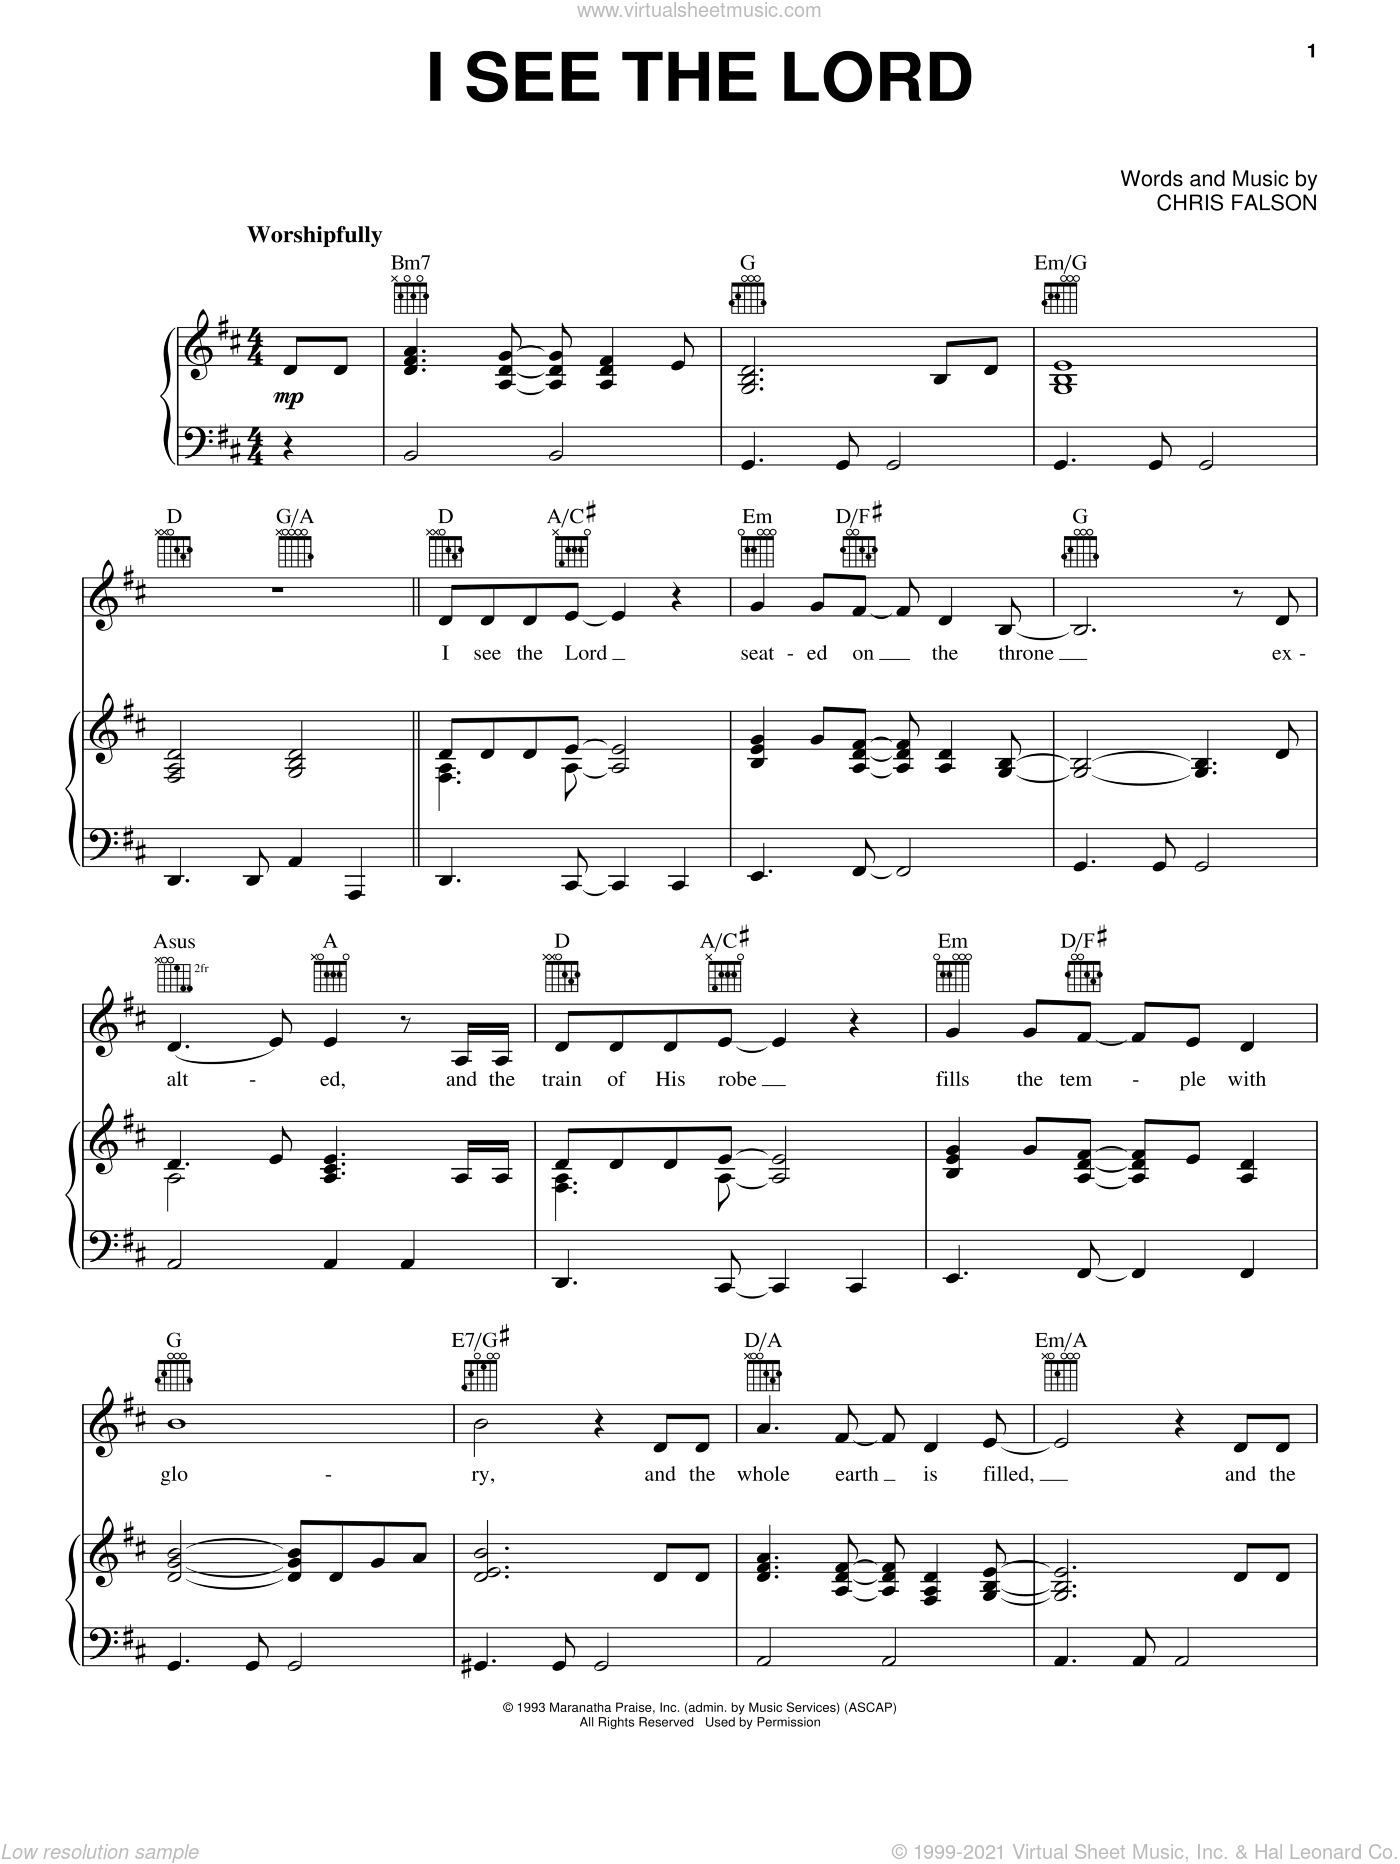 I See The Lord sheet music for voice, piano or guitar by Chris Falson, intermediate skill level